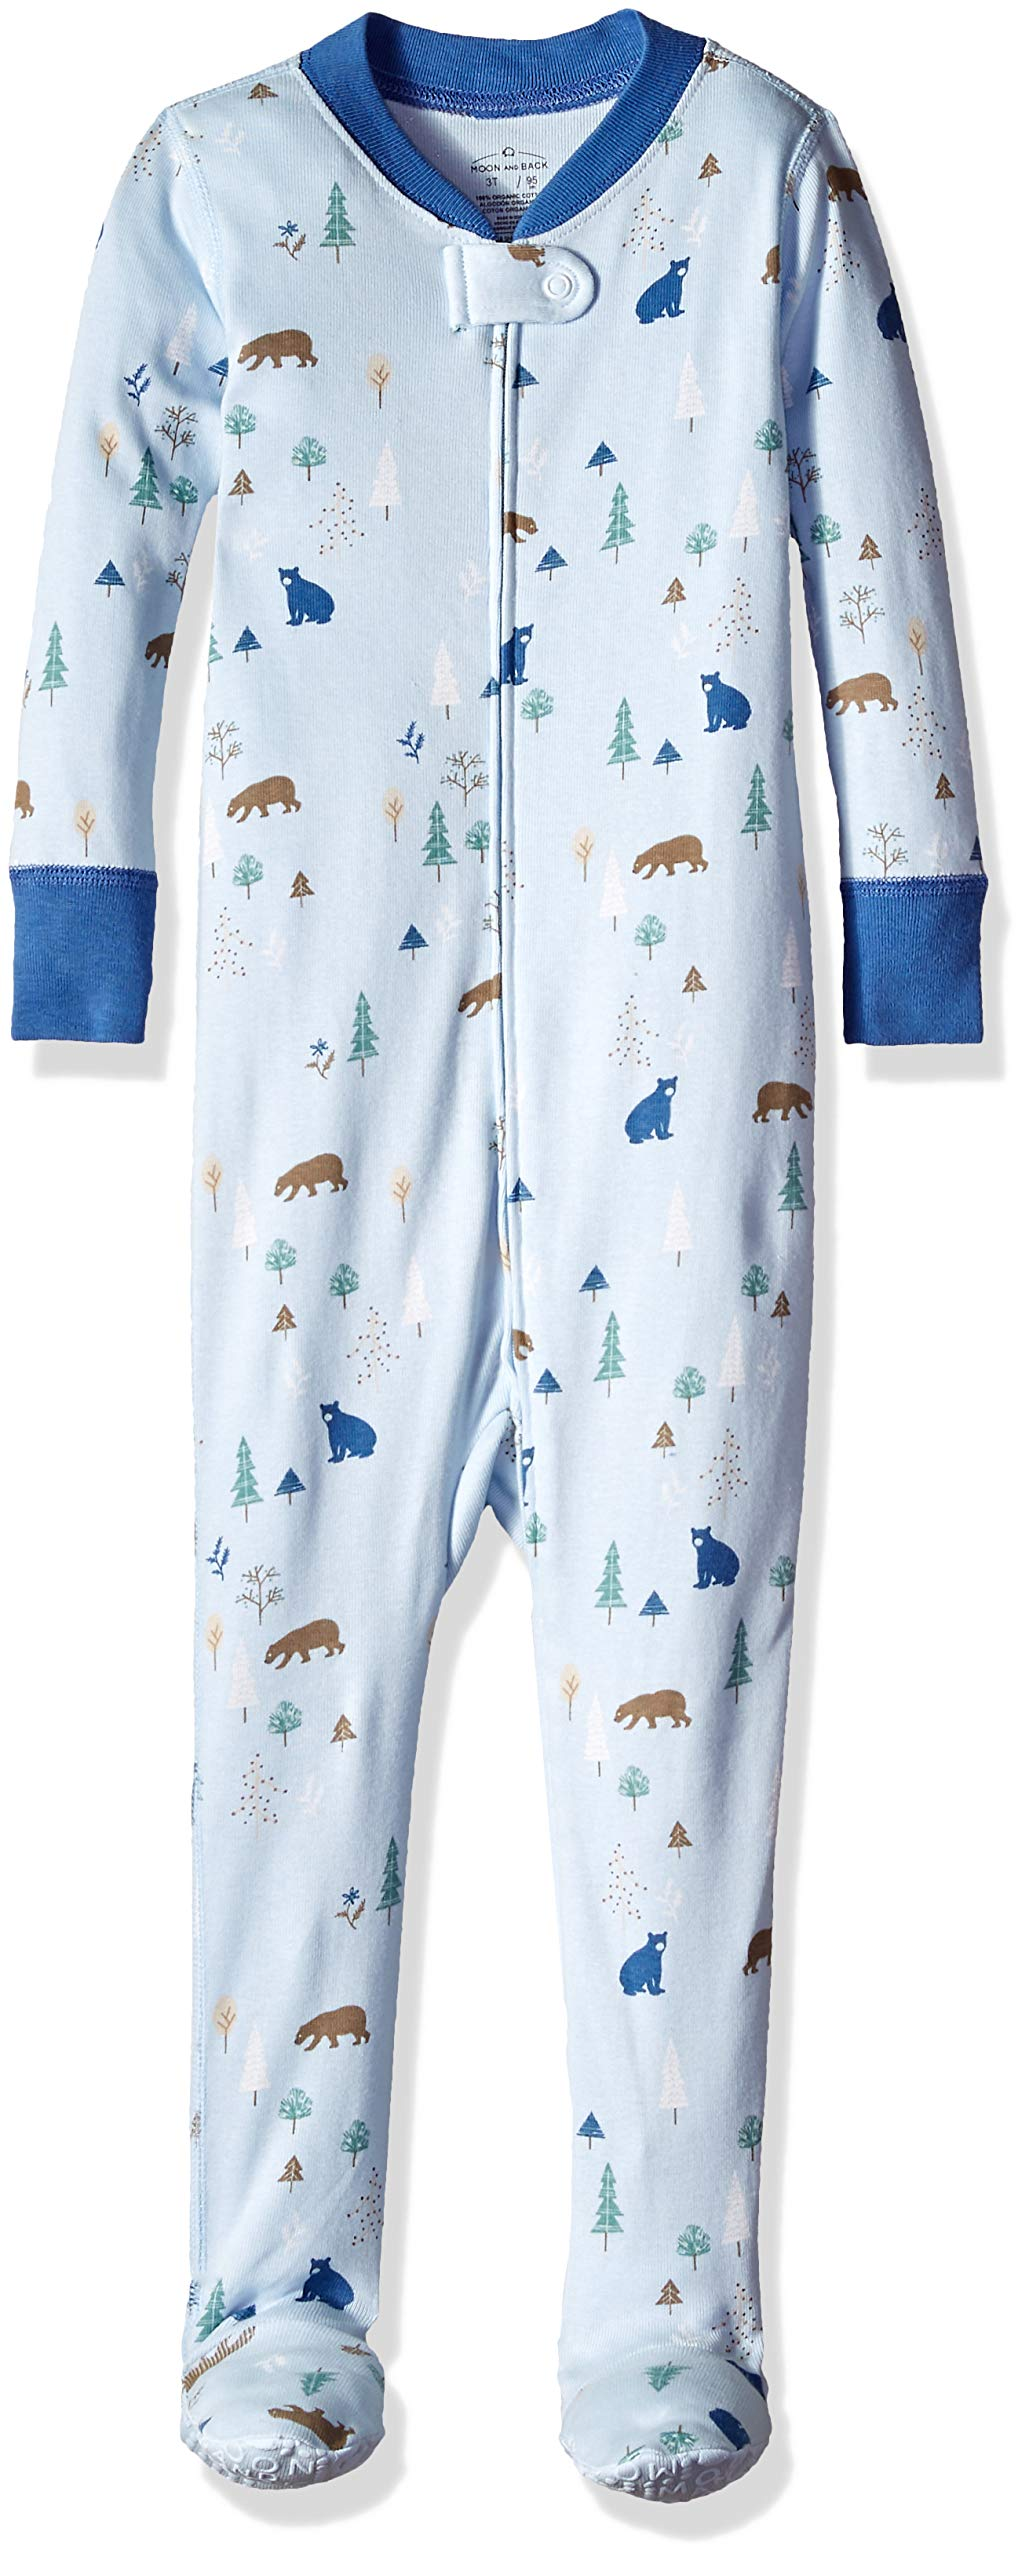 Moon and Back Organic One-Piece Footed Pajamas, Bear Print, 5T